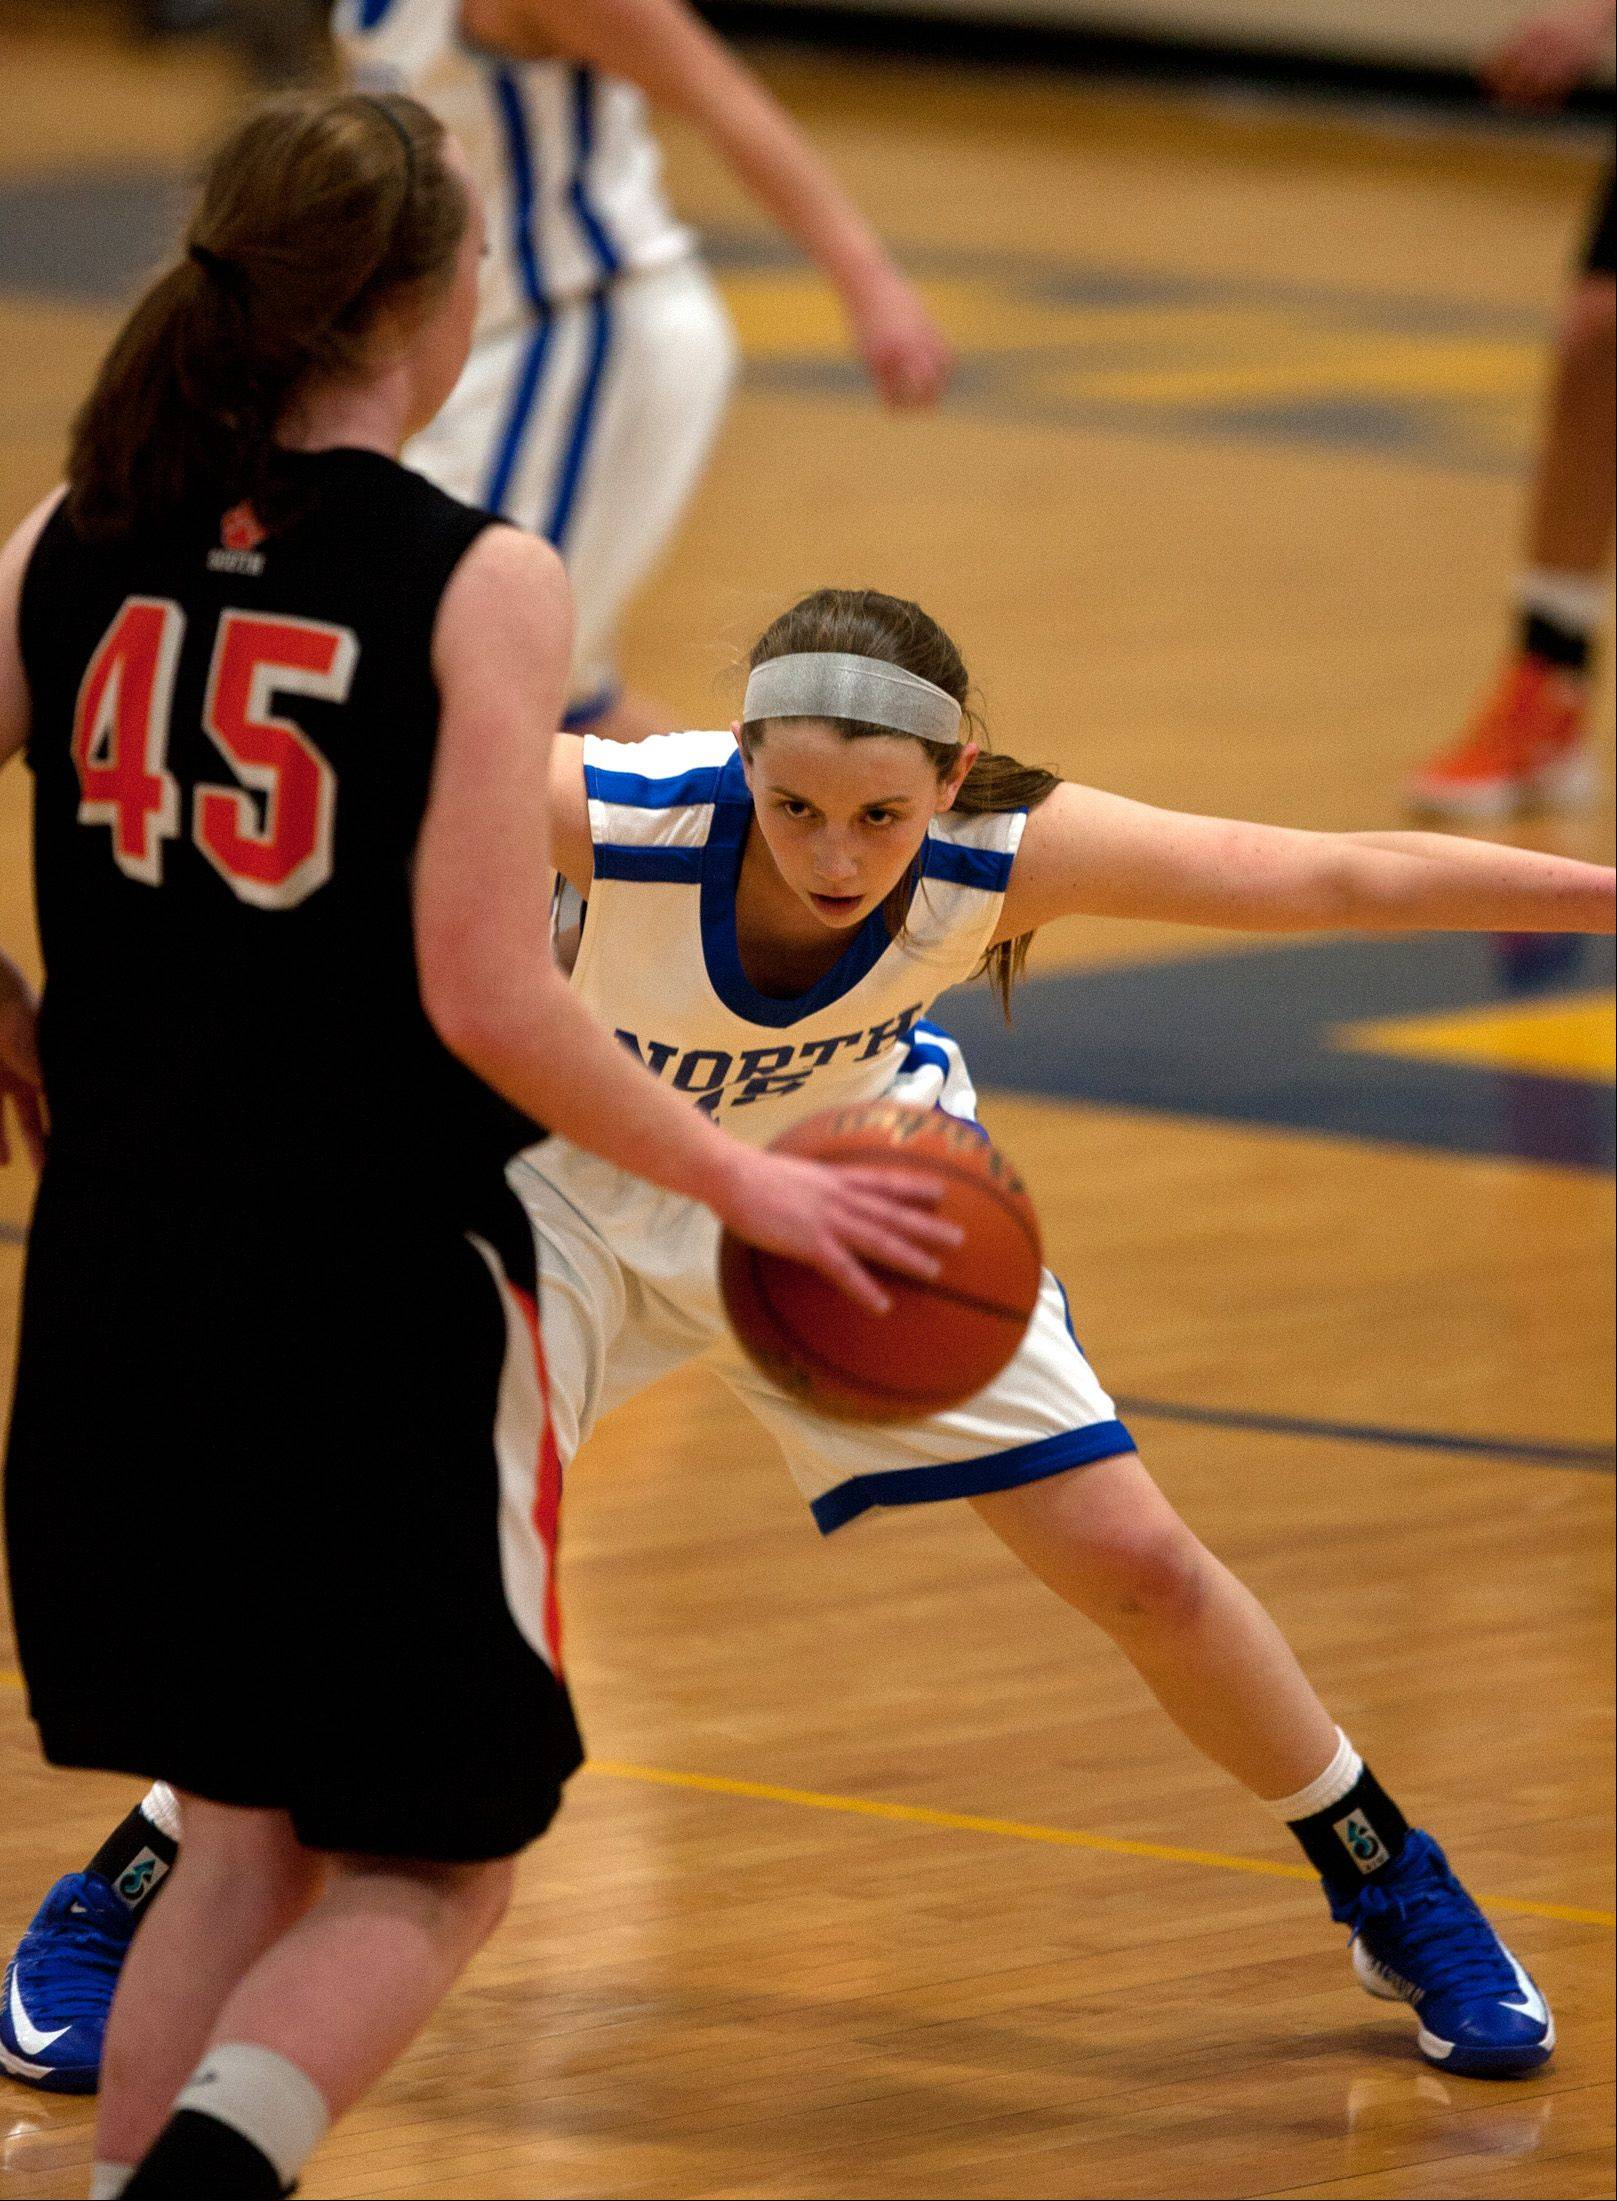 Images from the Wheaton North vs. Wheaton Warrenville South girls' basketball game on Saturday, Jan. 12, 2013.